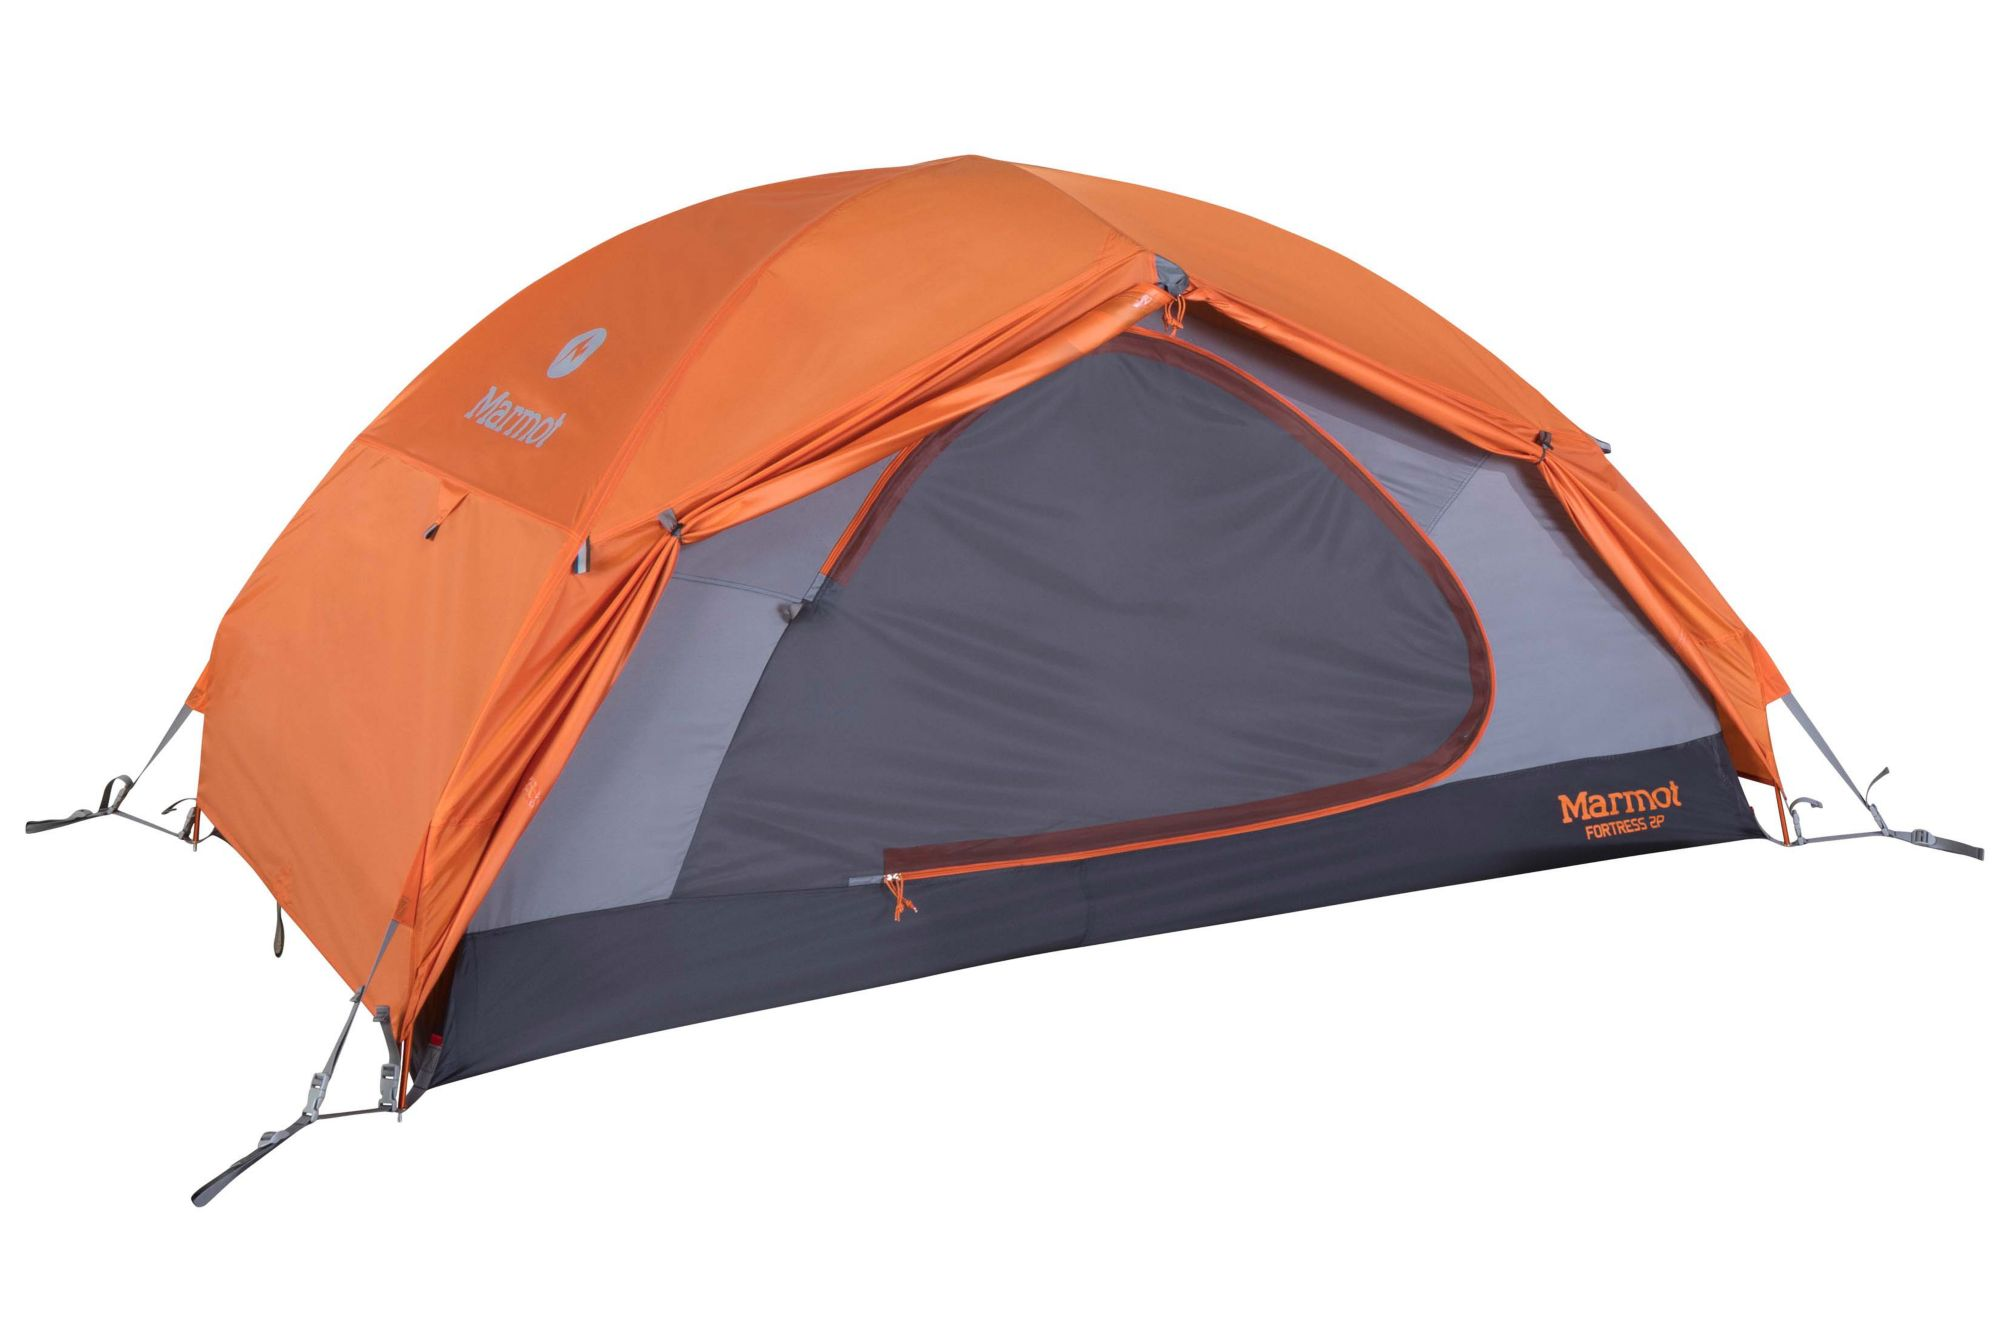 Tangelo//Grey Marmot Fortress 2 Person Lightweight Backpacking Tent